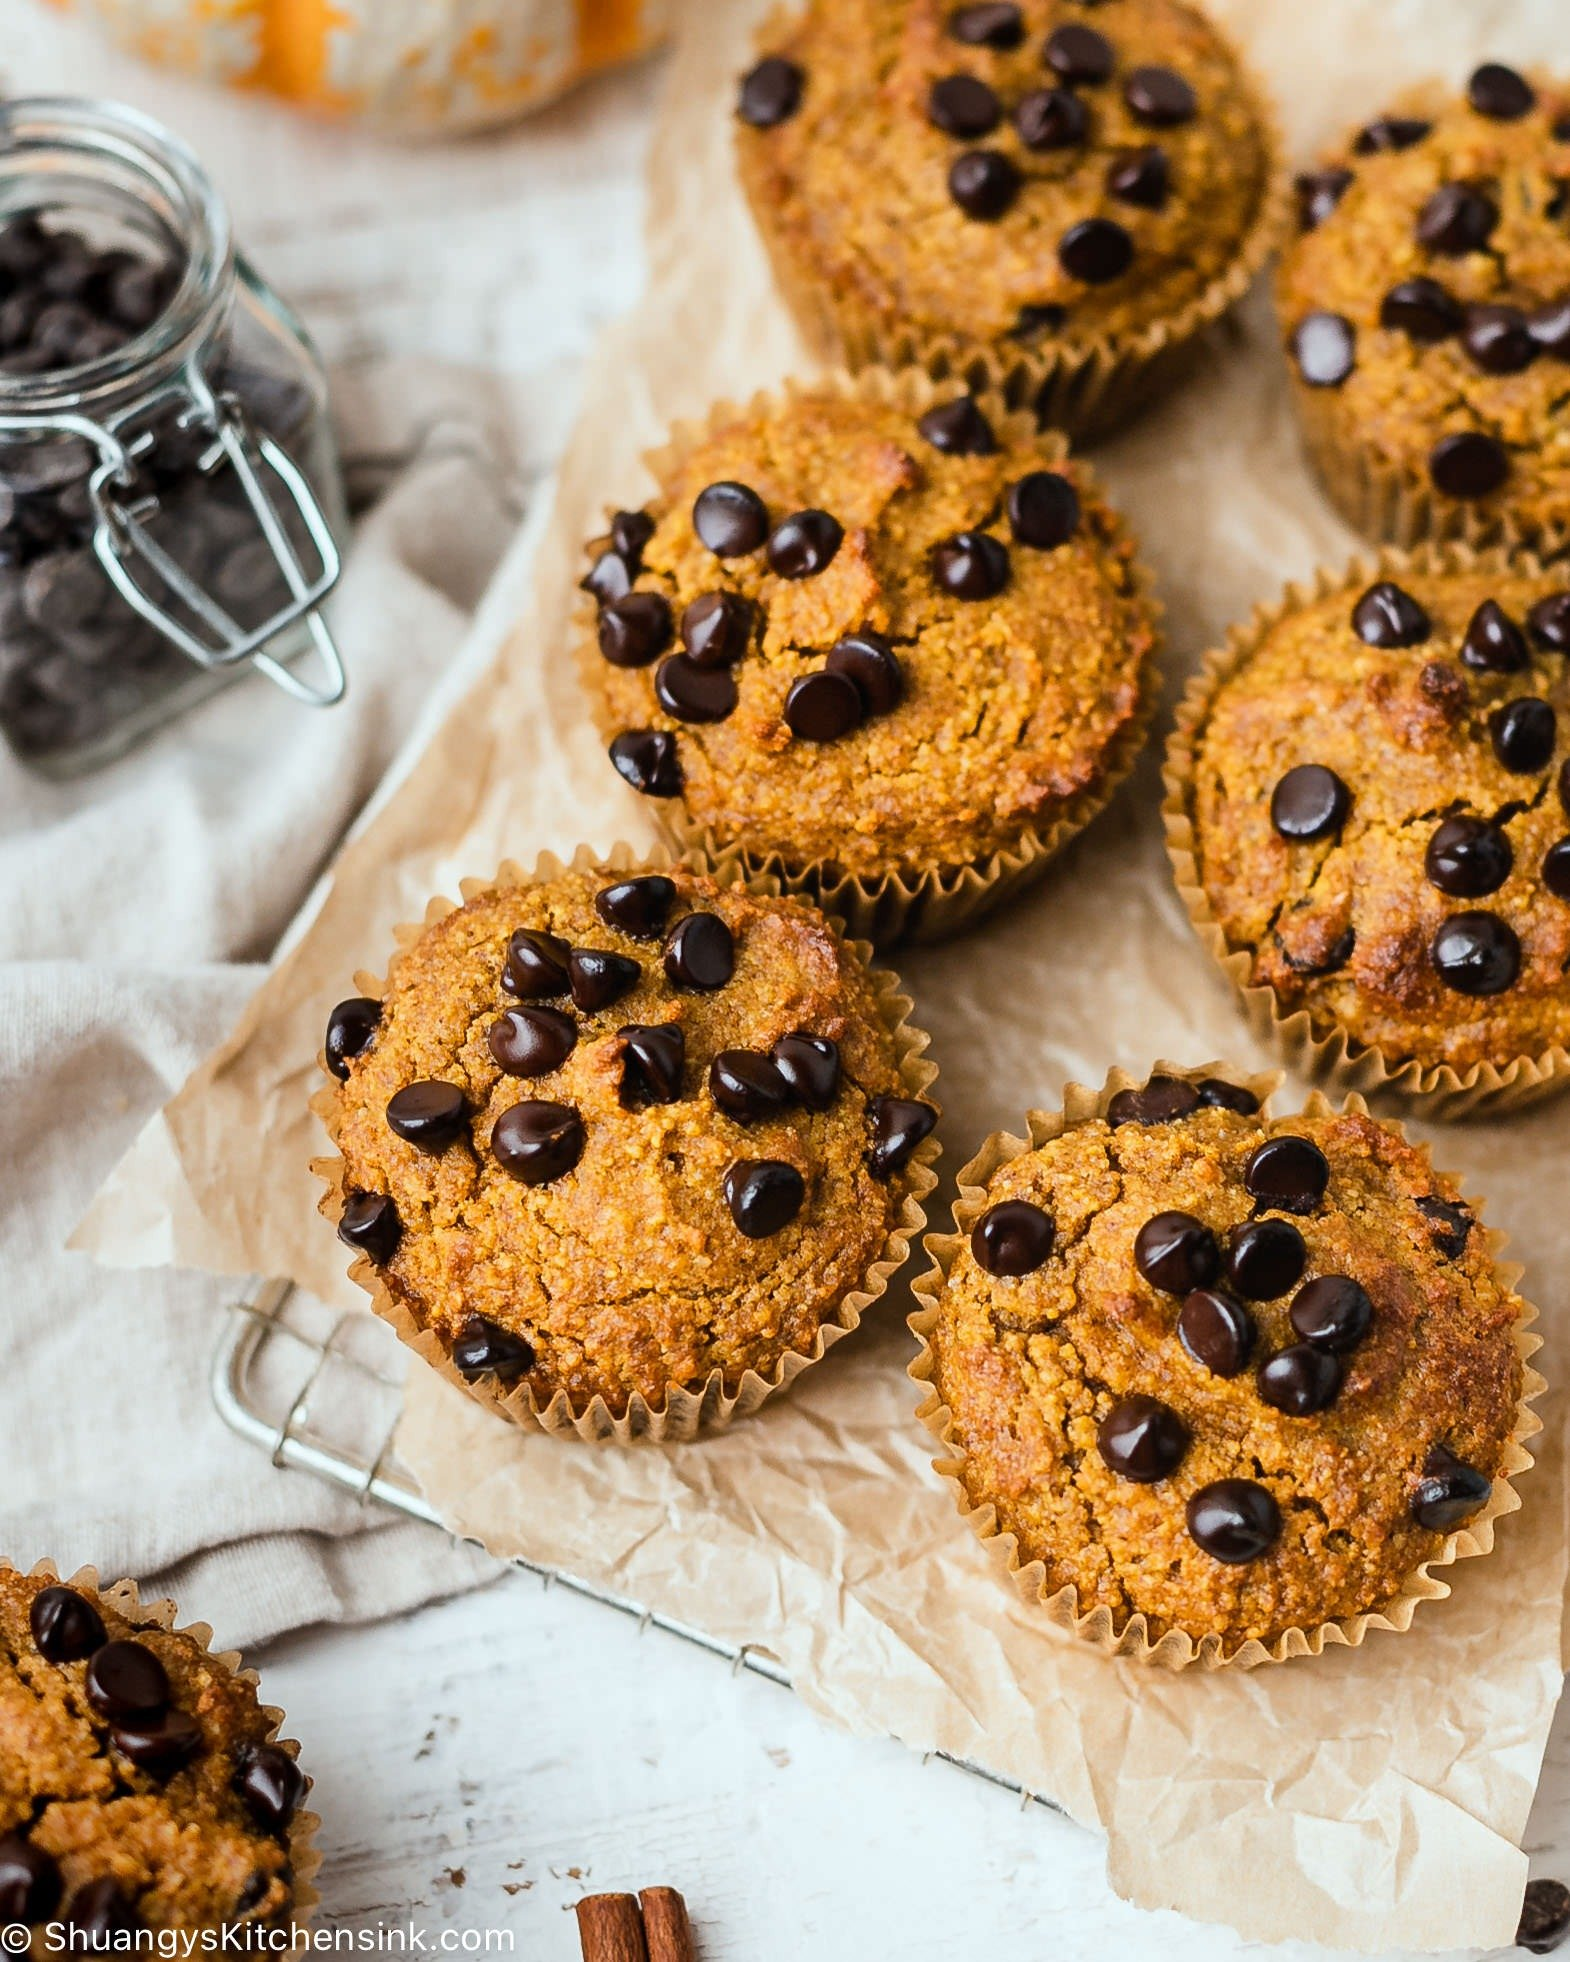 These are six paleo pumpkin muffins on a cooling rack. They are topped with dairy-free chocolate chis